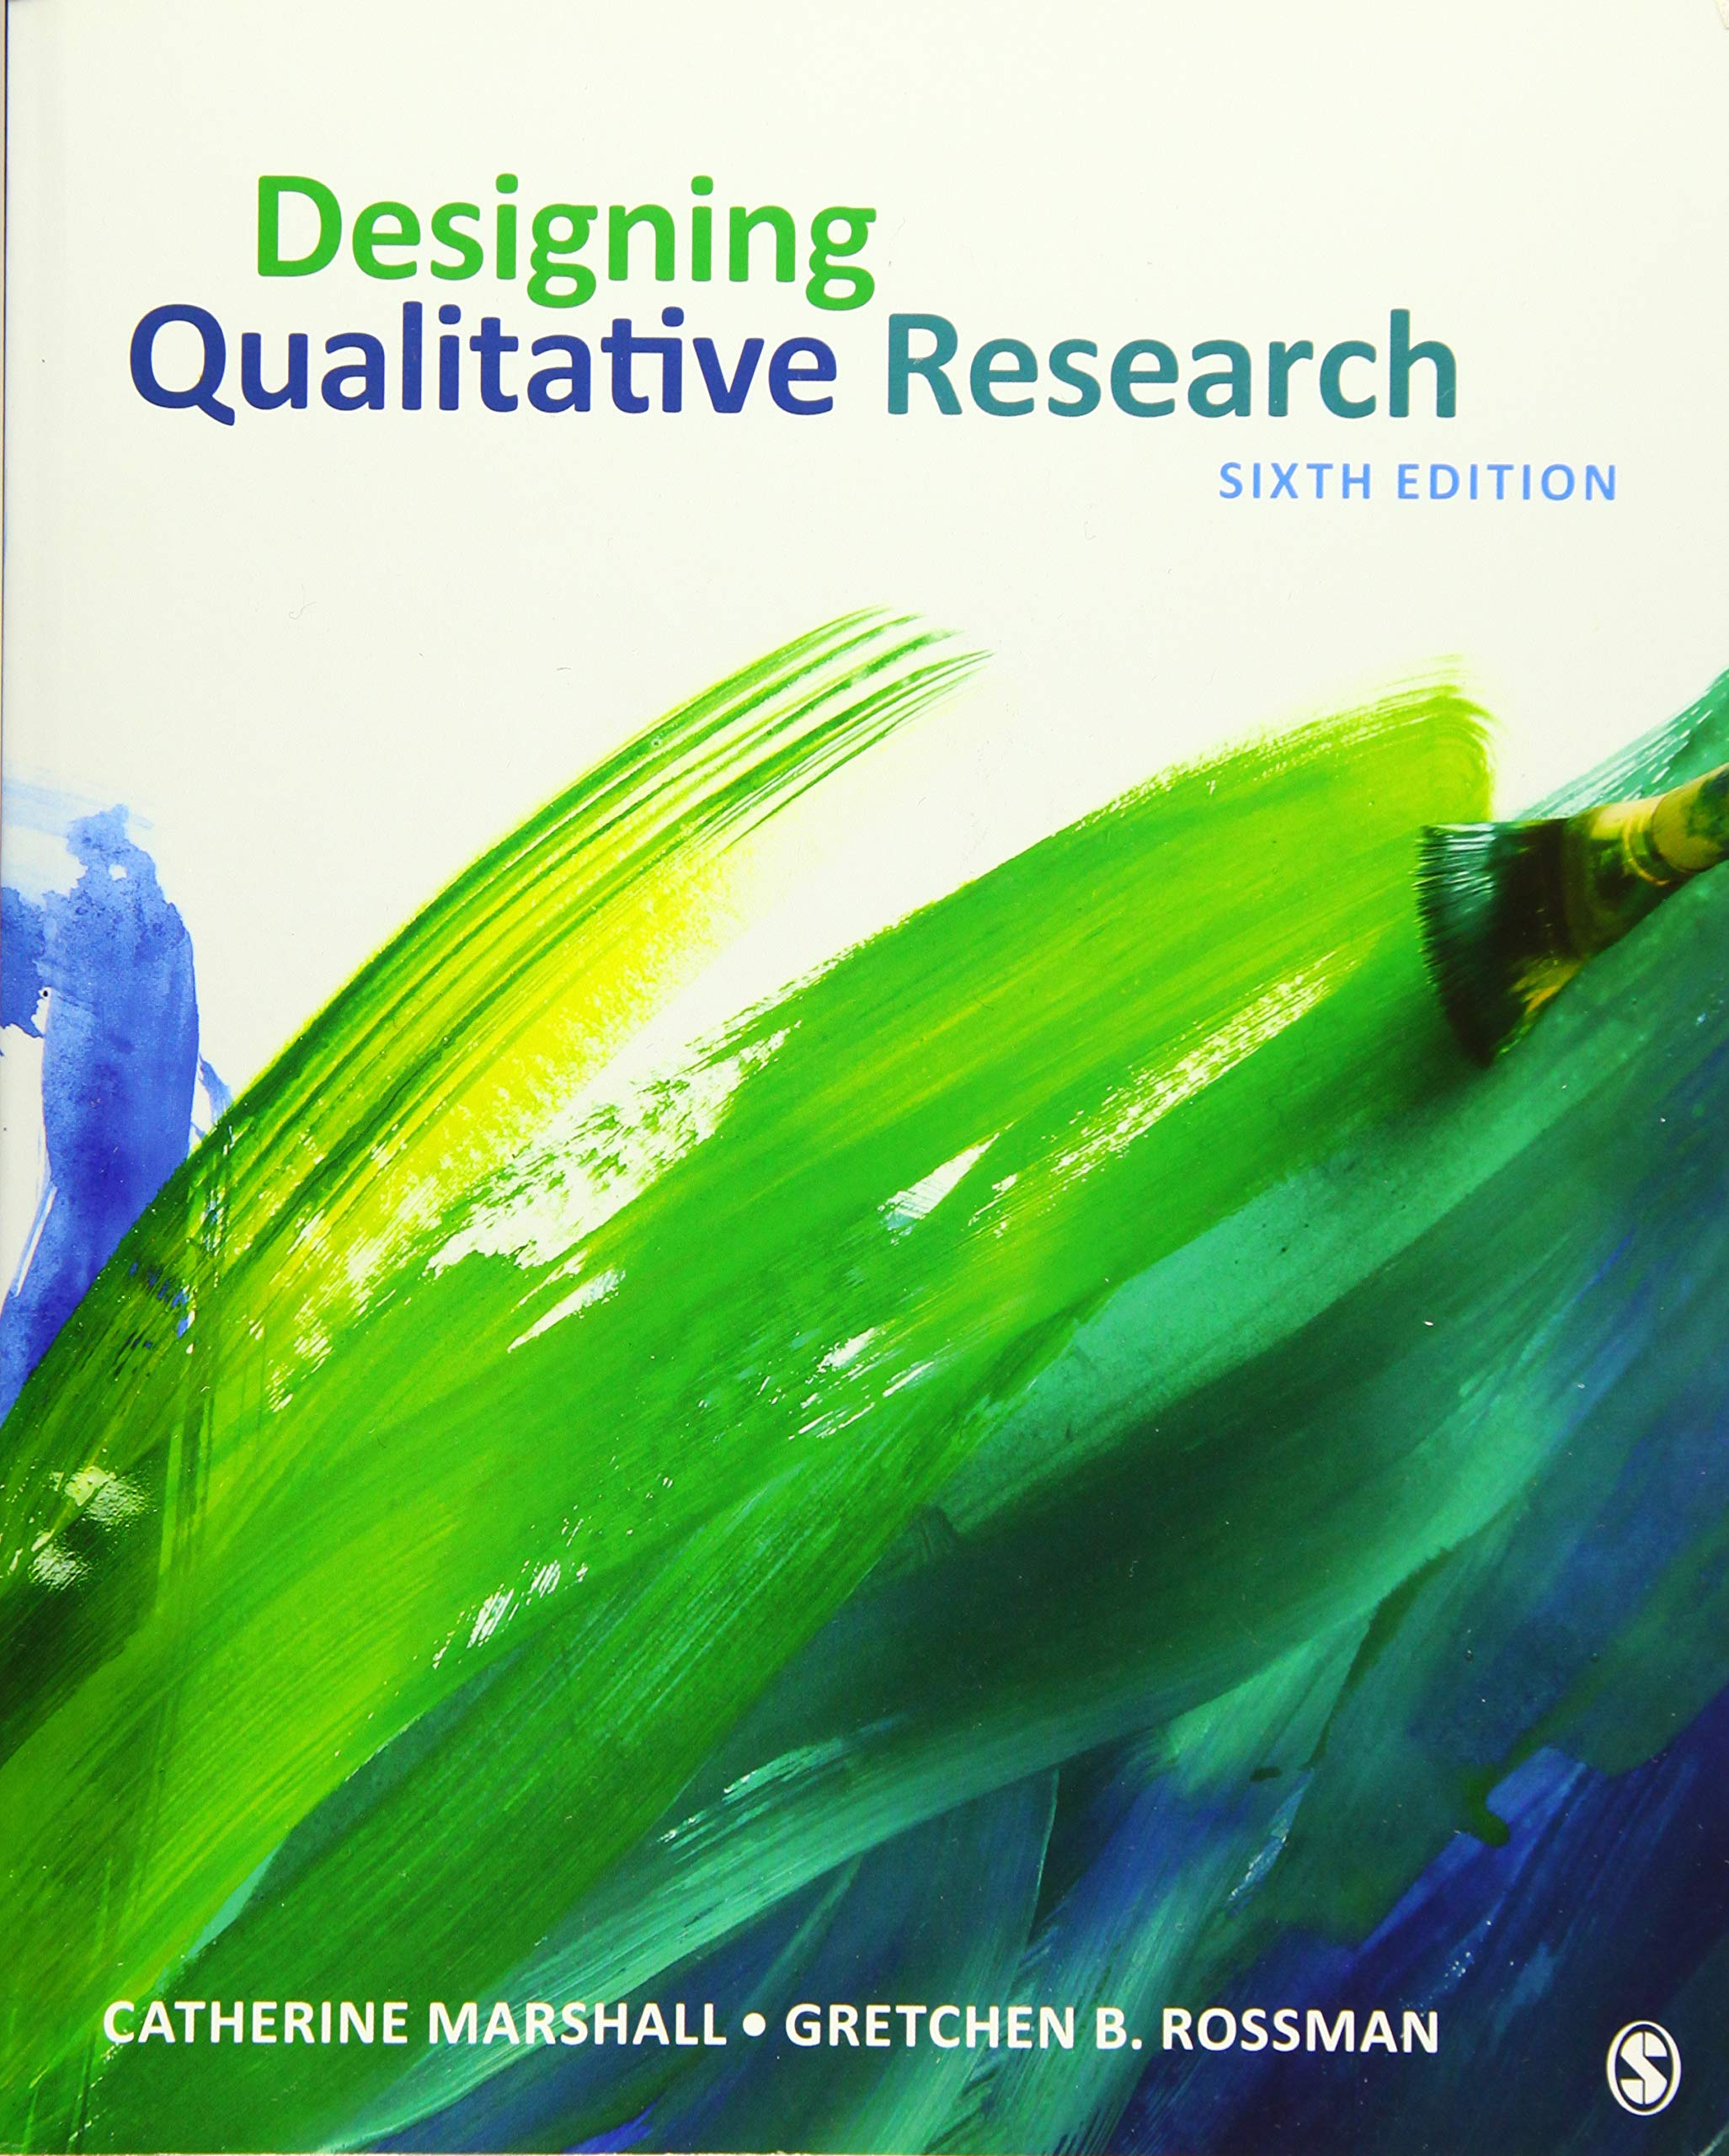 Designing Qualitative Research by imusti